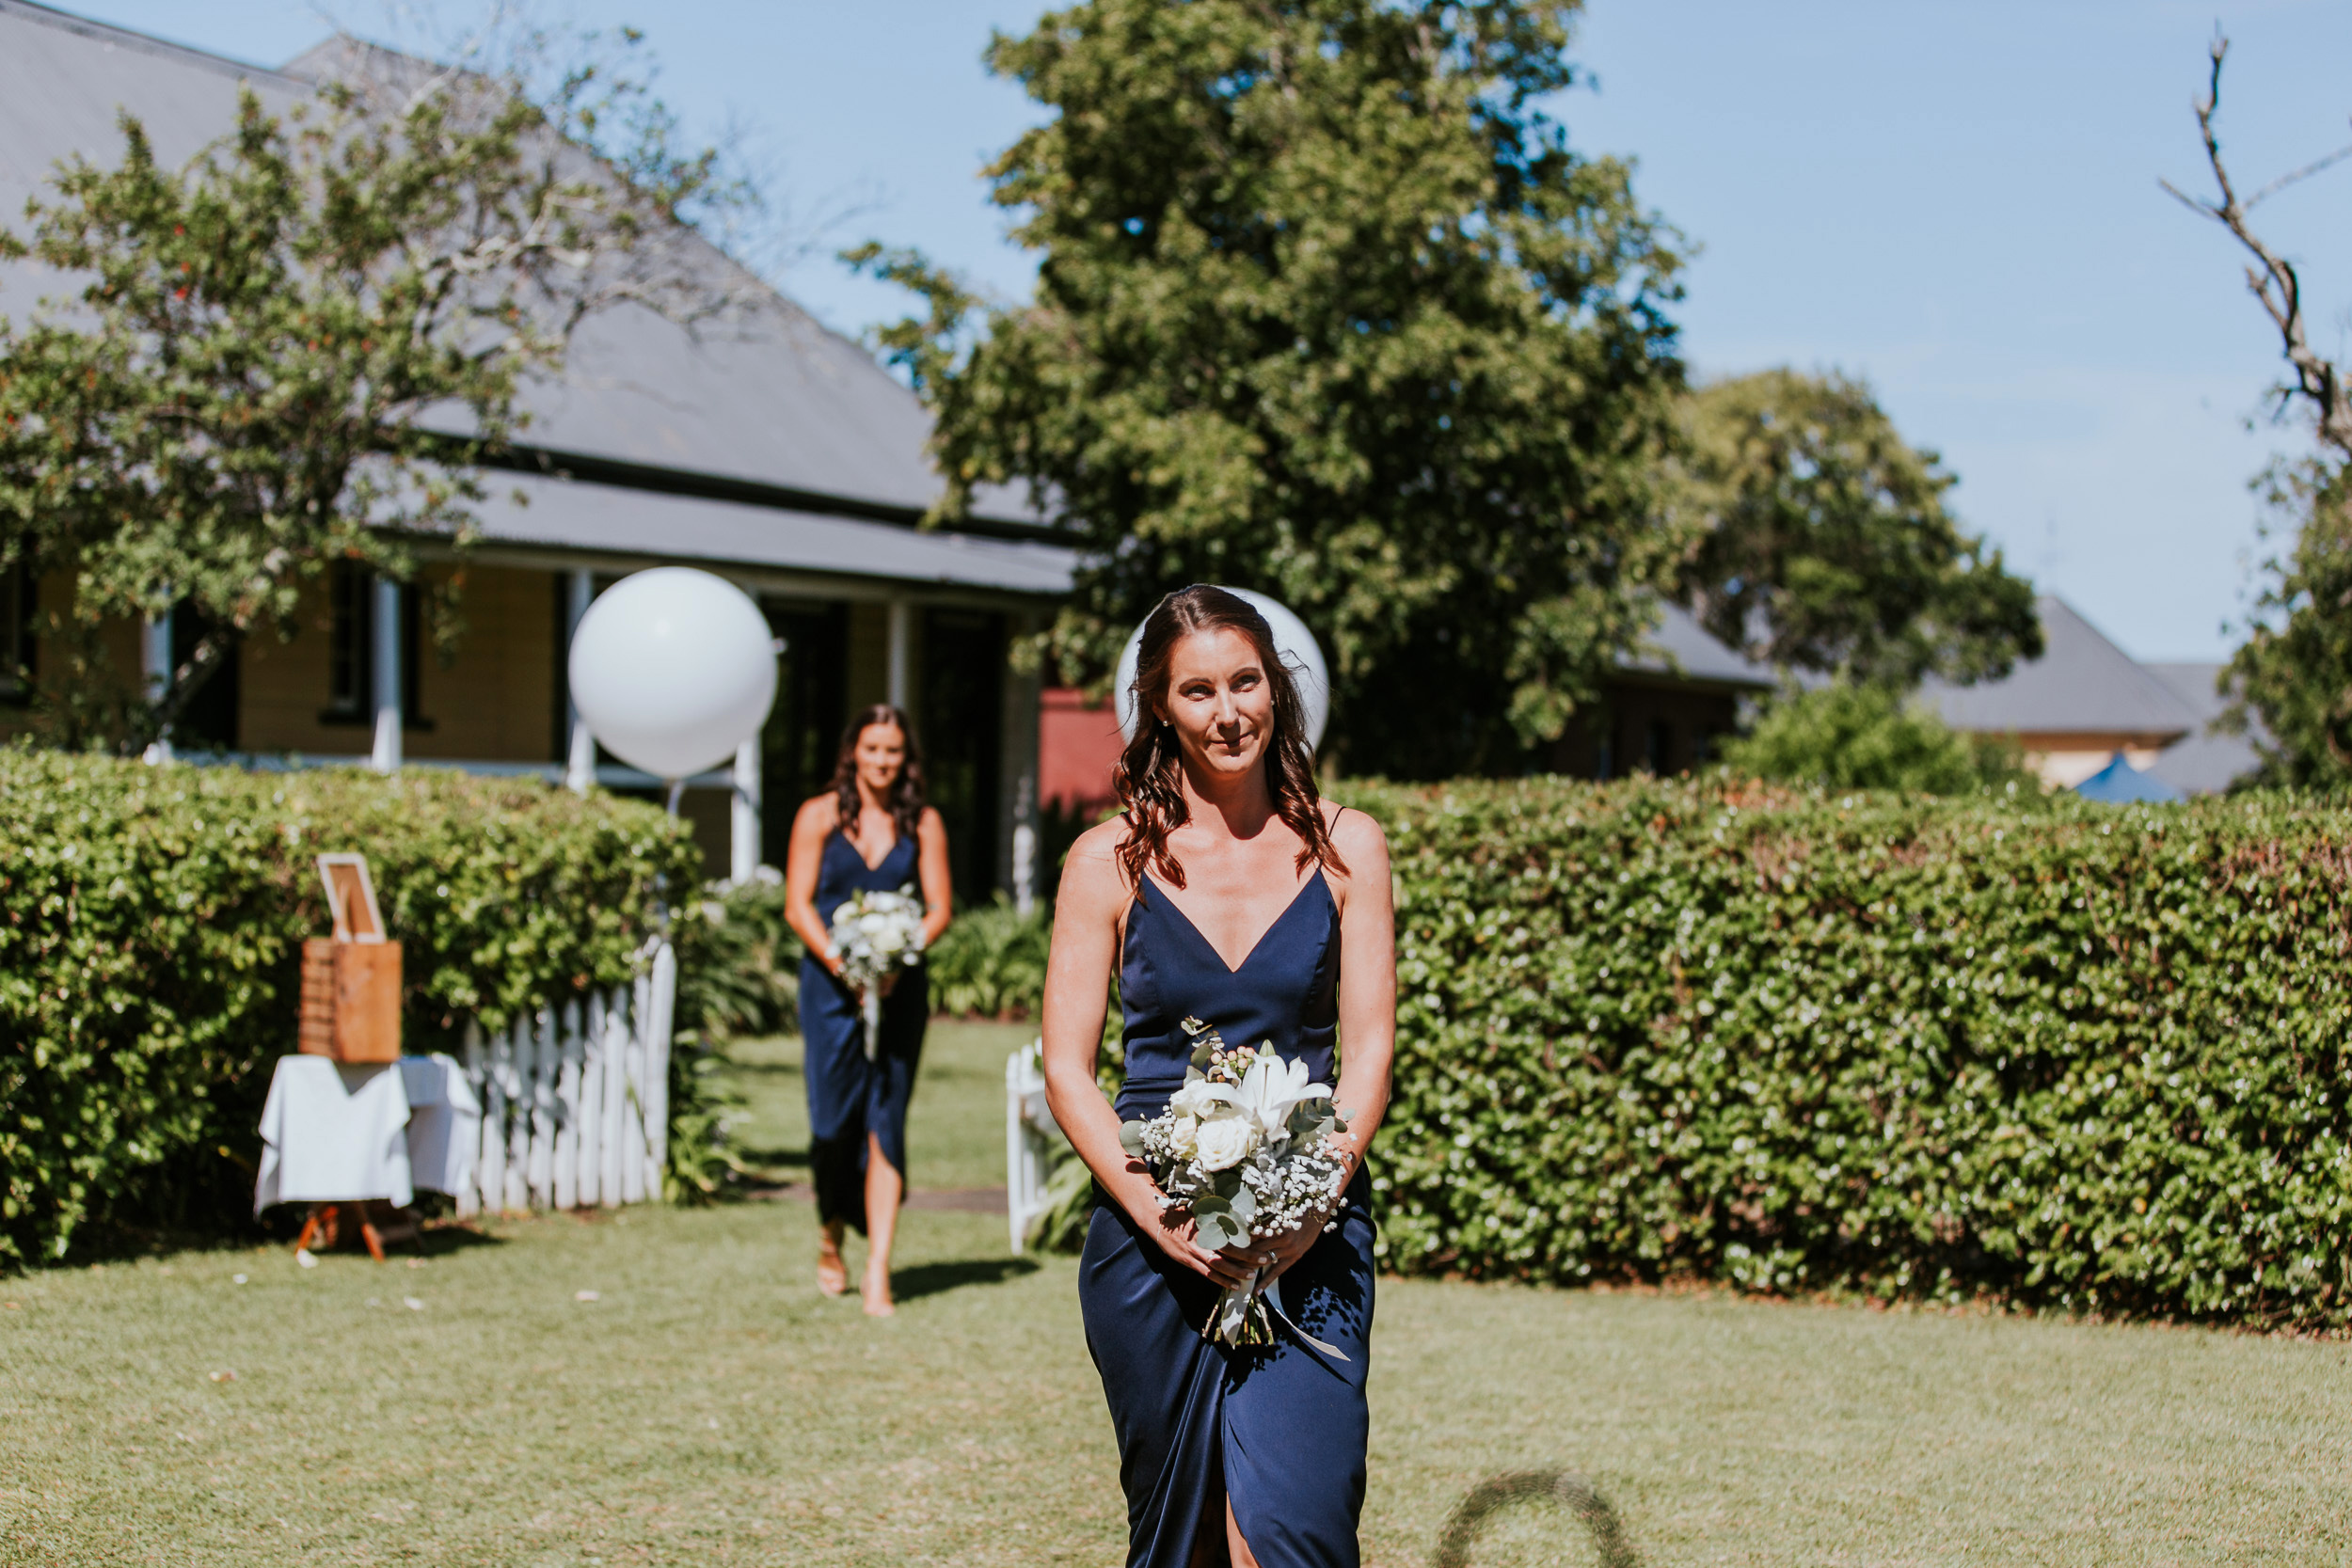 20170311 - Holly & Dan Coolangatta Estate Wedding | 089-2.jpg